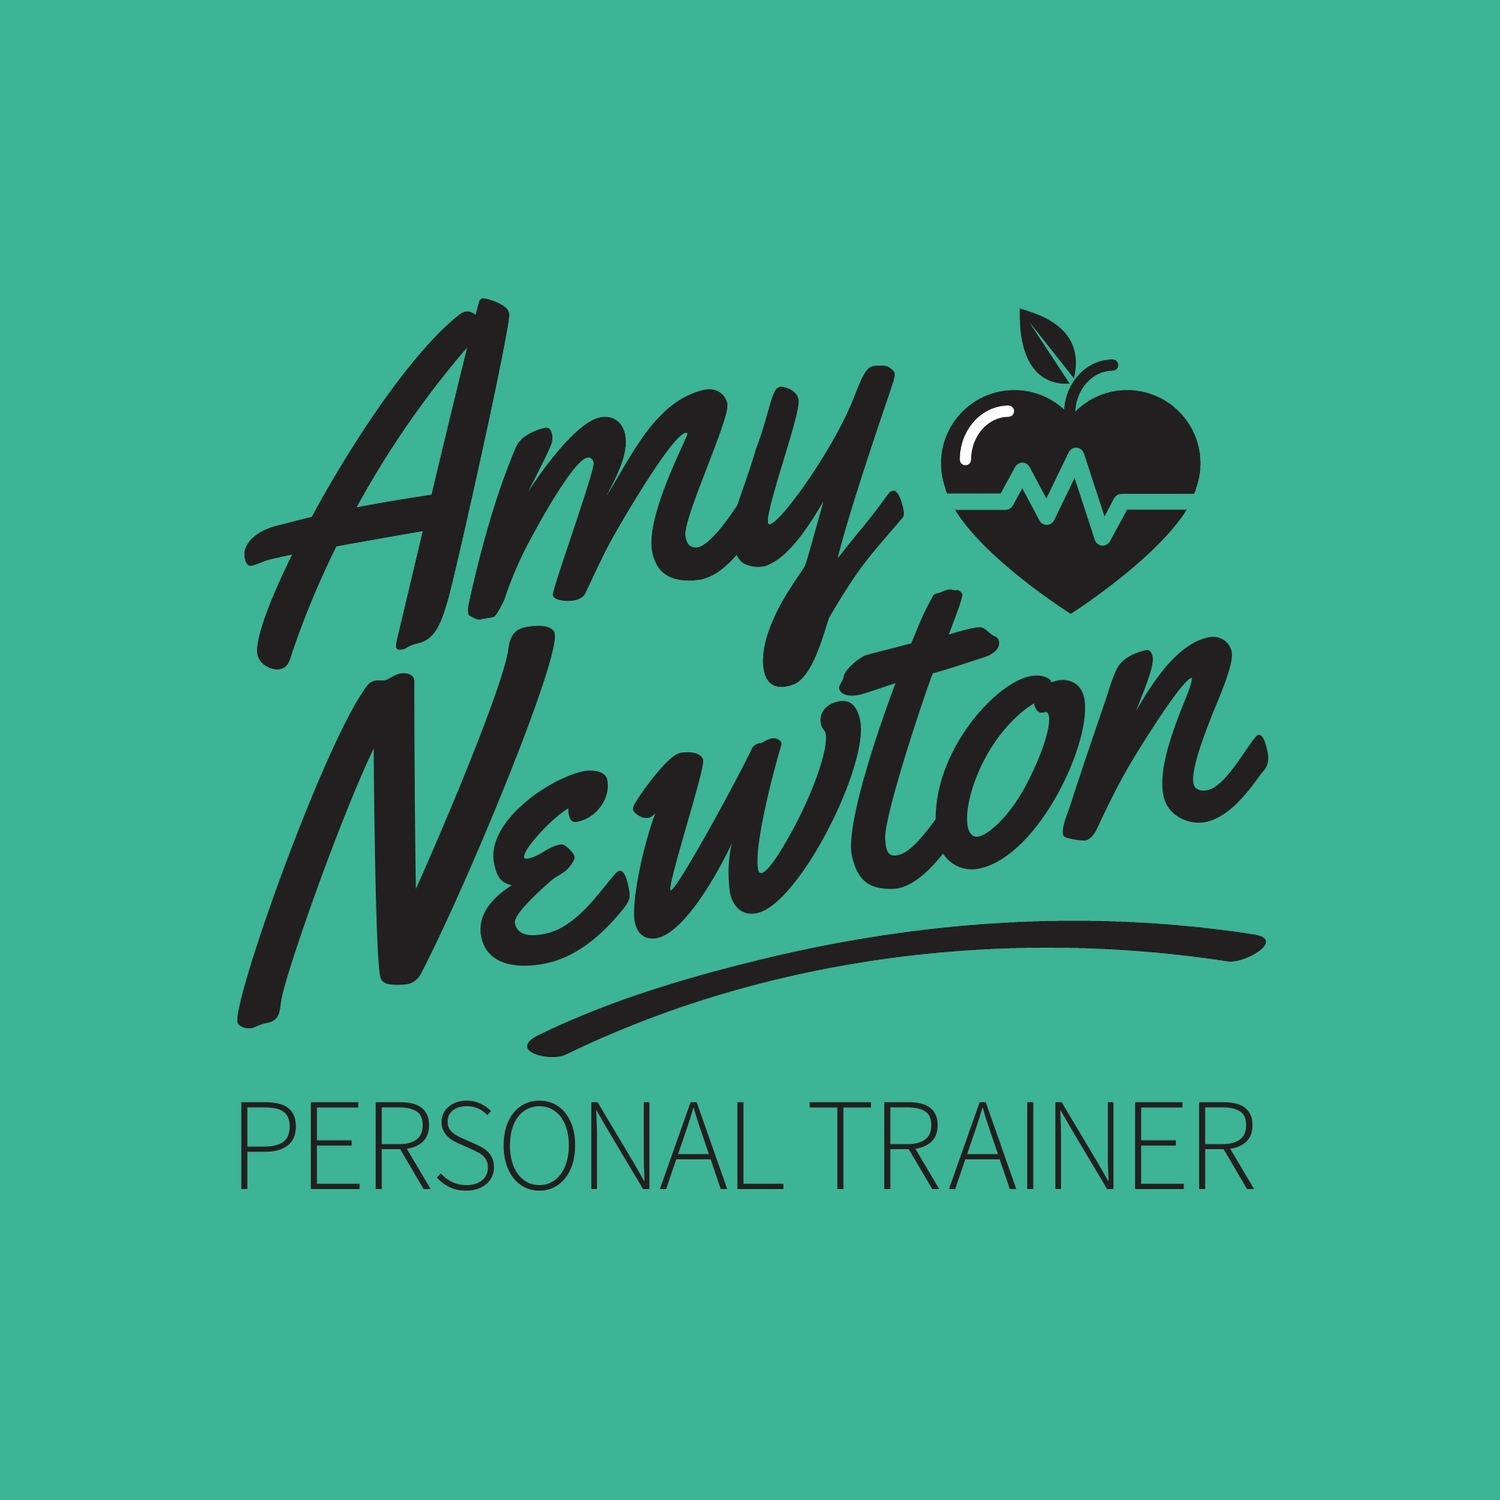 Amy Newton Personal Trainer